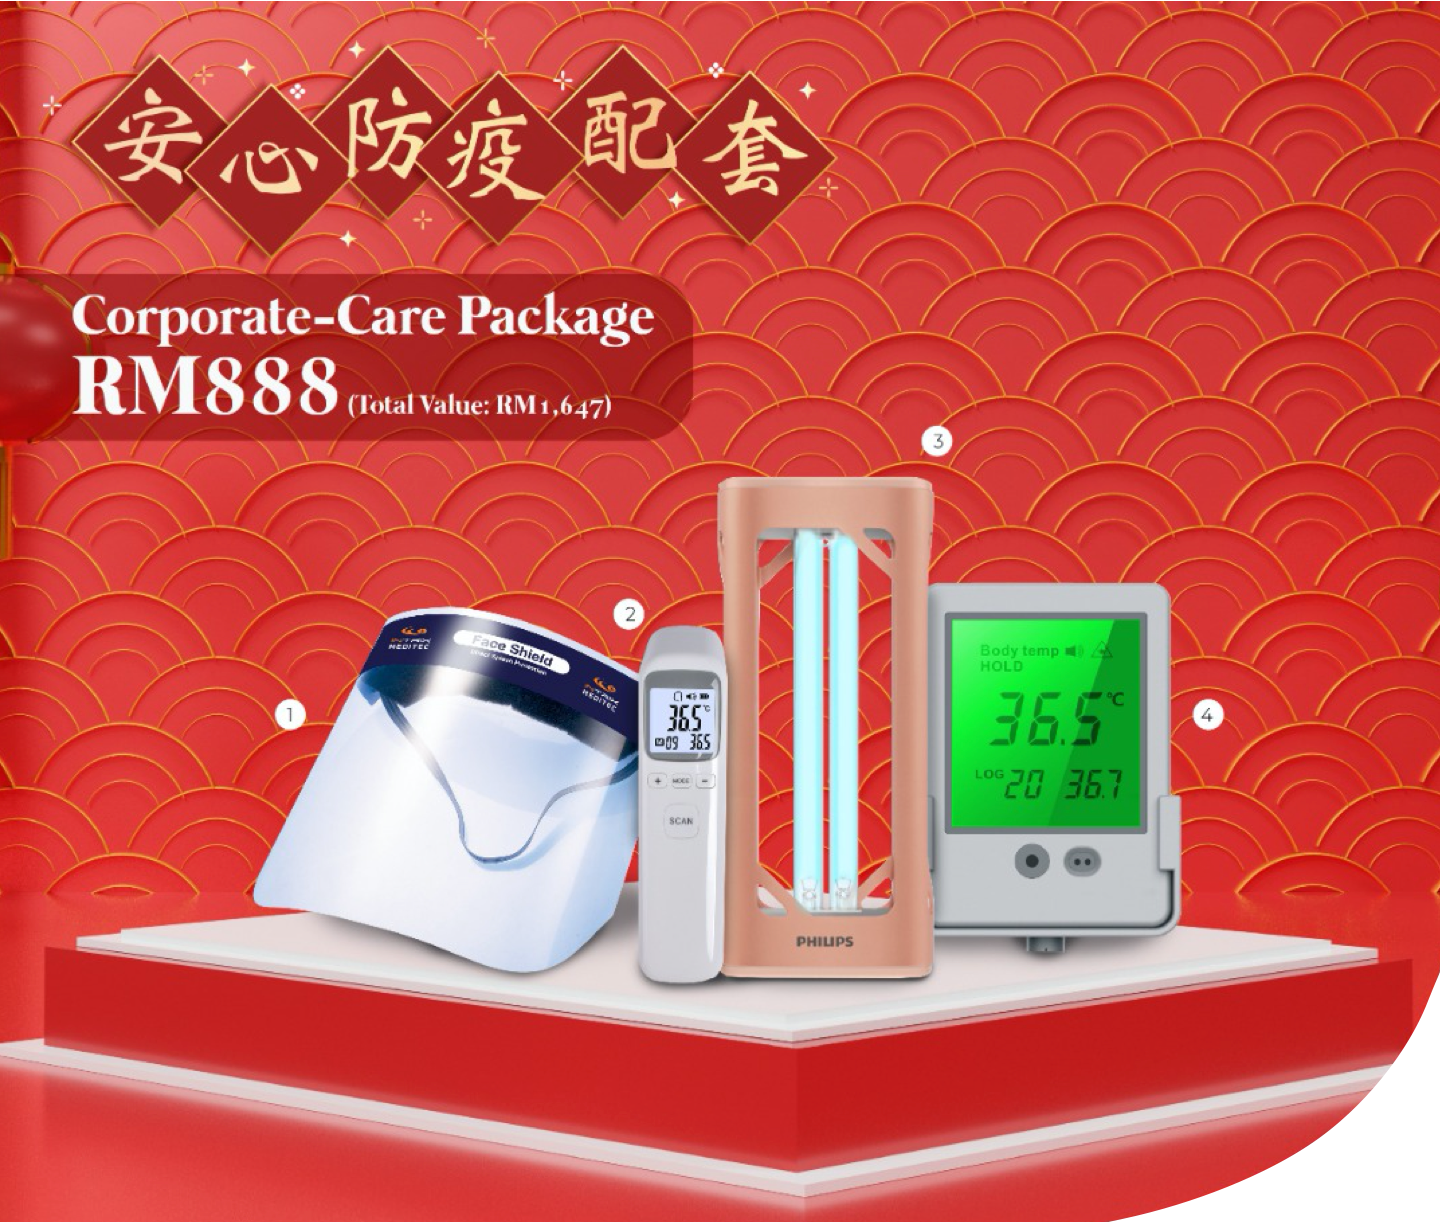 CNY CORPORATE CARE HAMPER PACKAGE